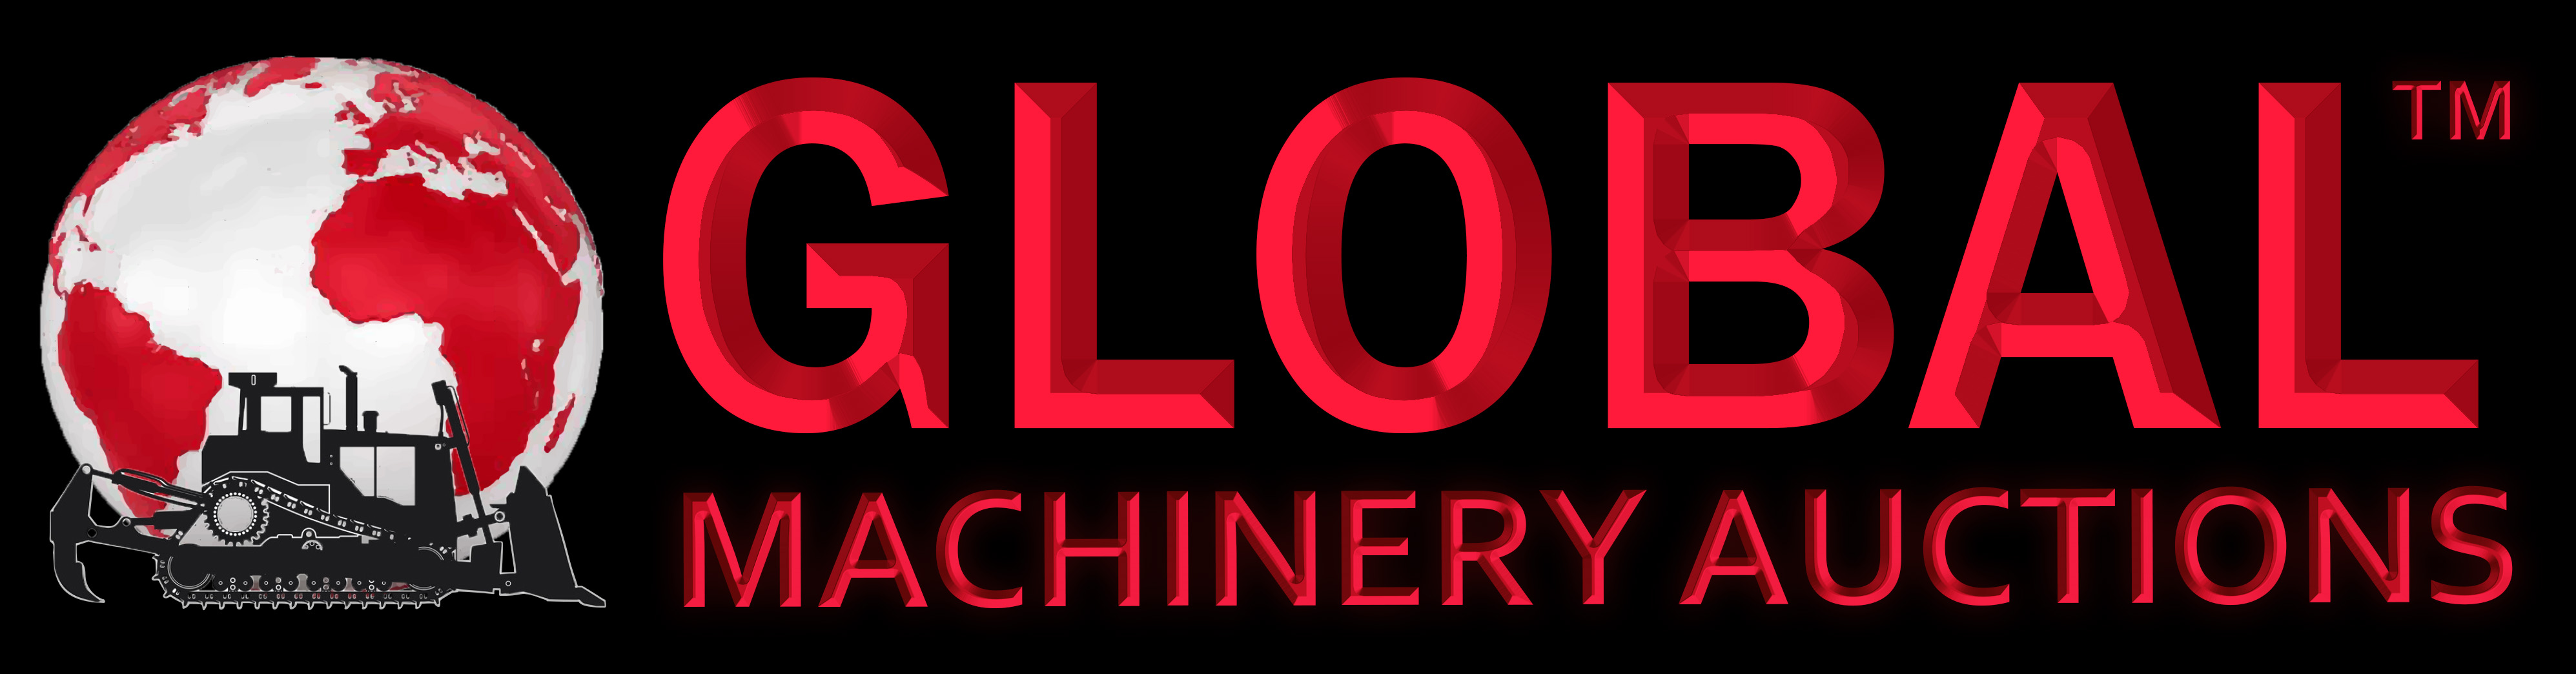 Global Machinery Auctions